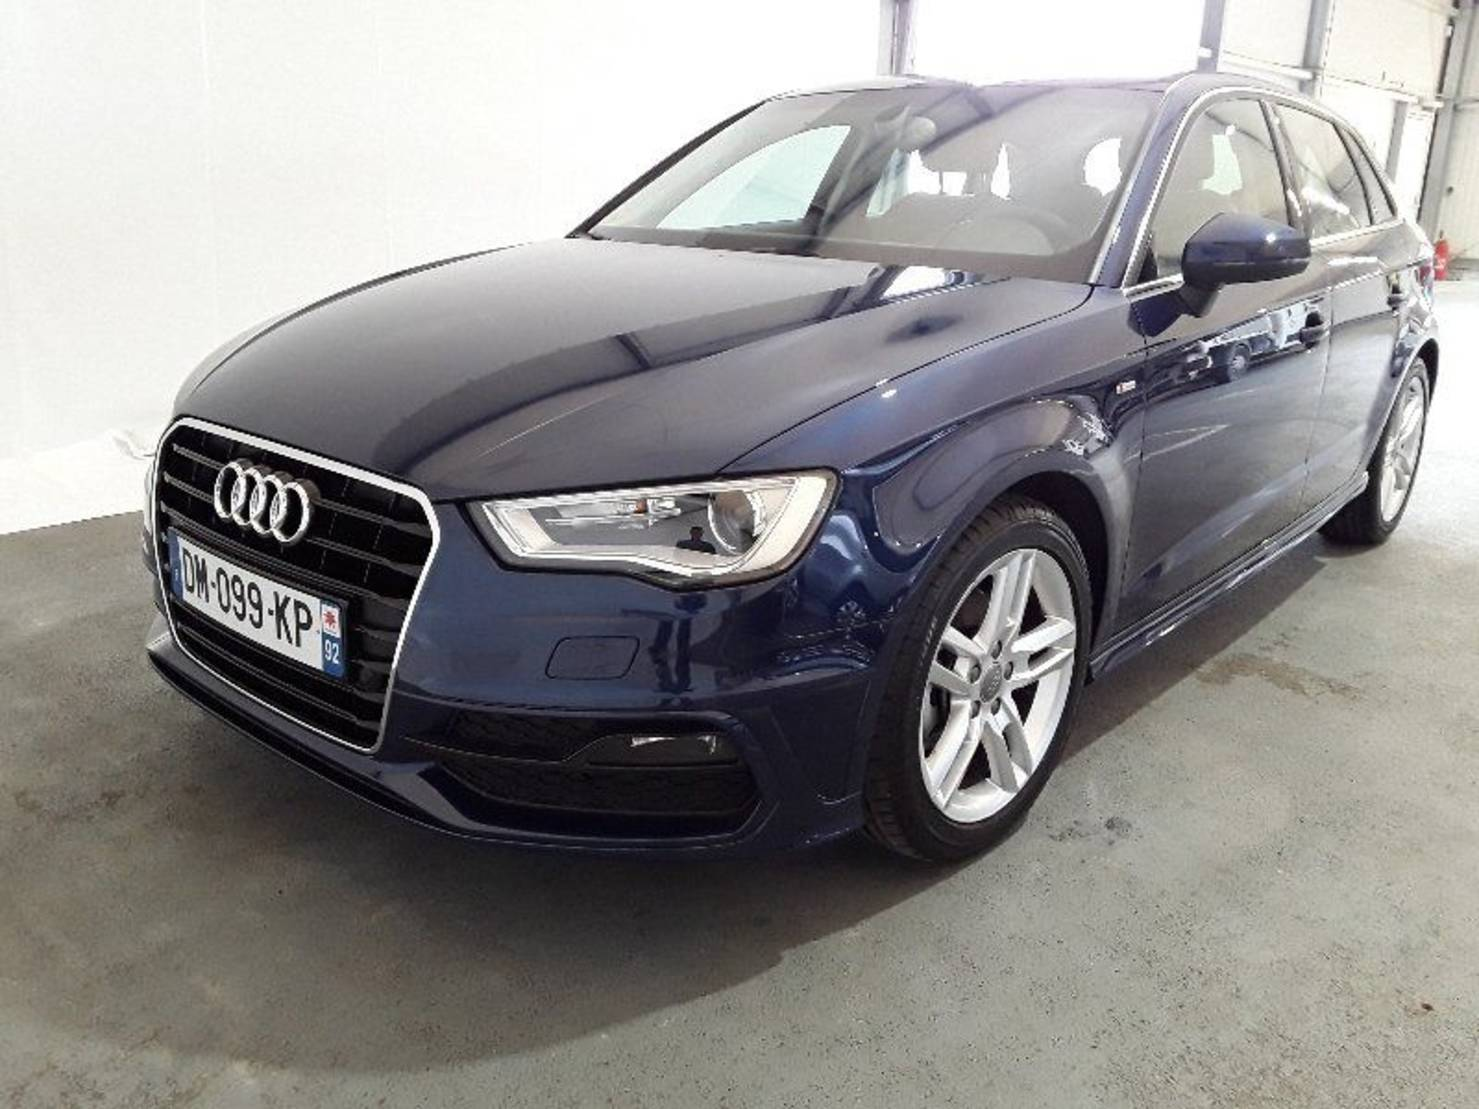 Audi A3 1.6 TDI 110, Ambition Luxe S tronic 7 detail1